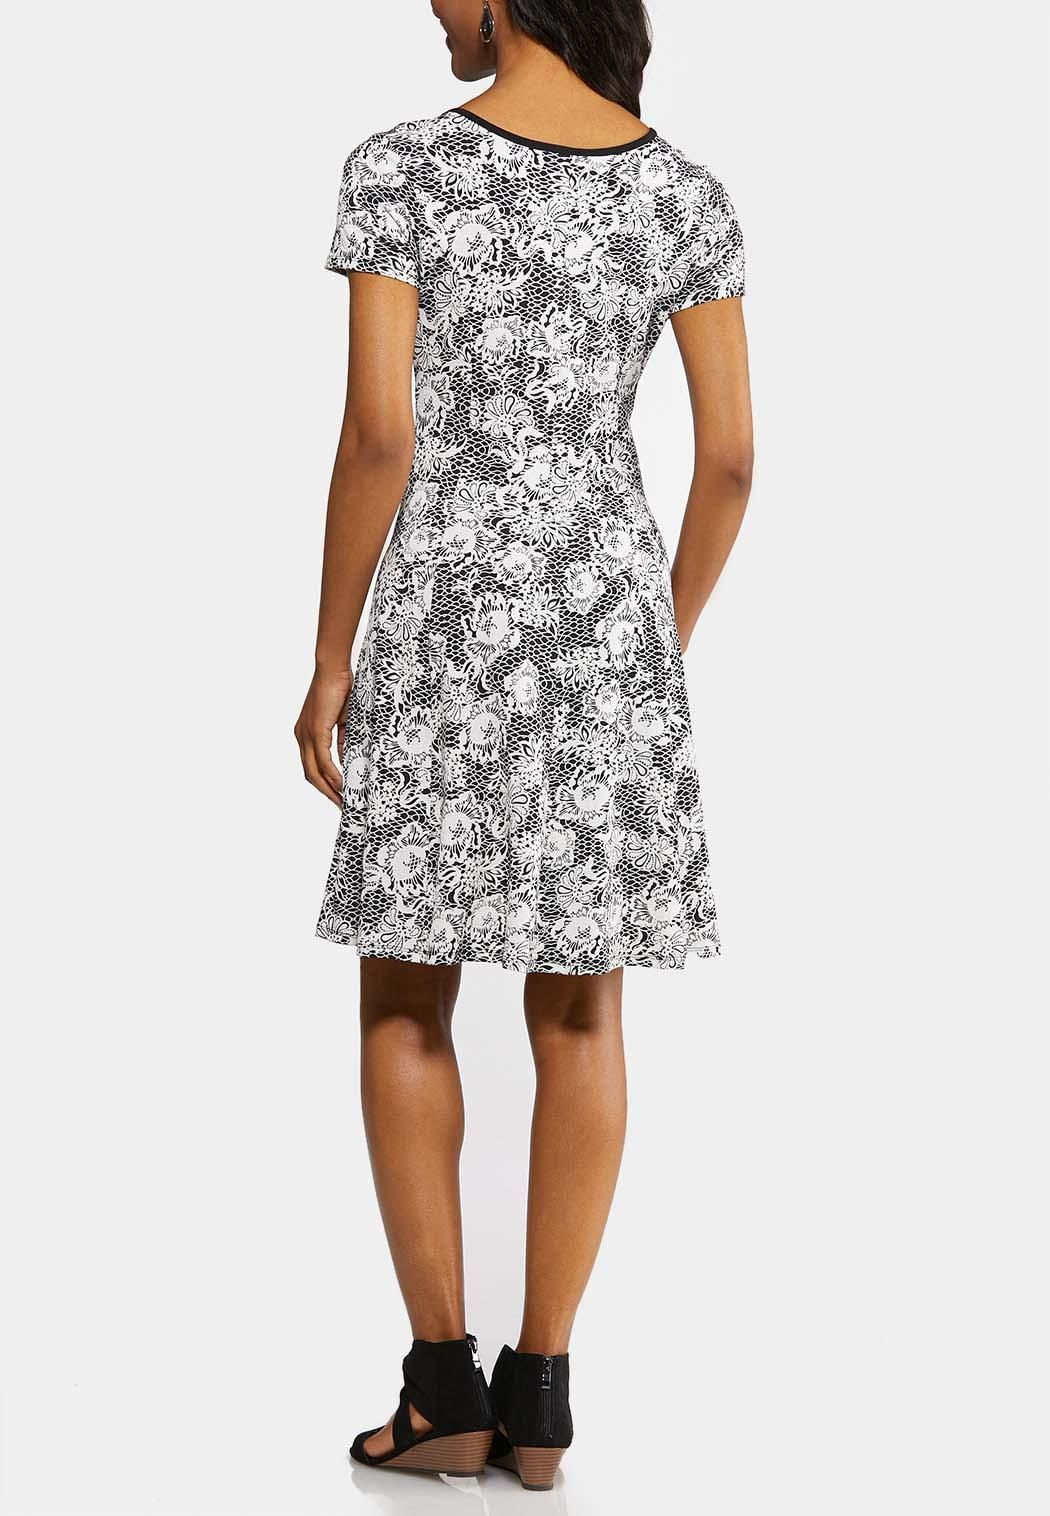 Plus Size Piped Puff Floral Dress (Item #43861824)